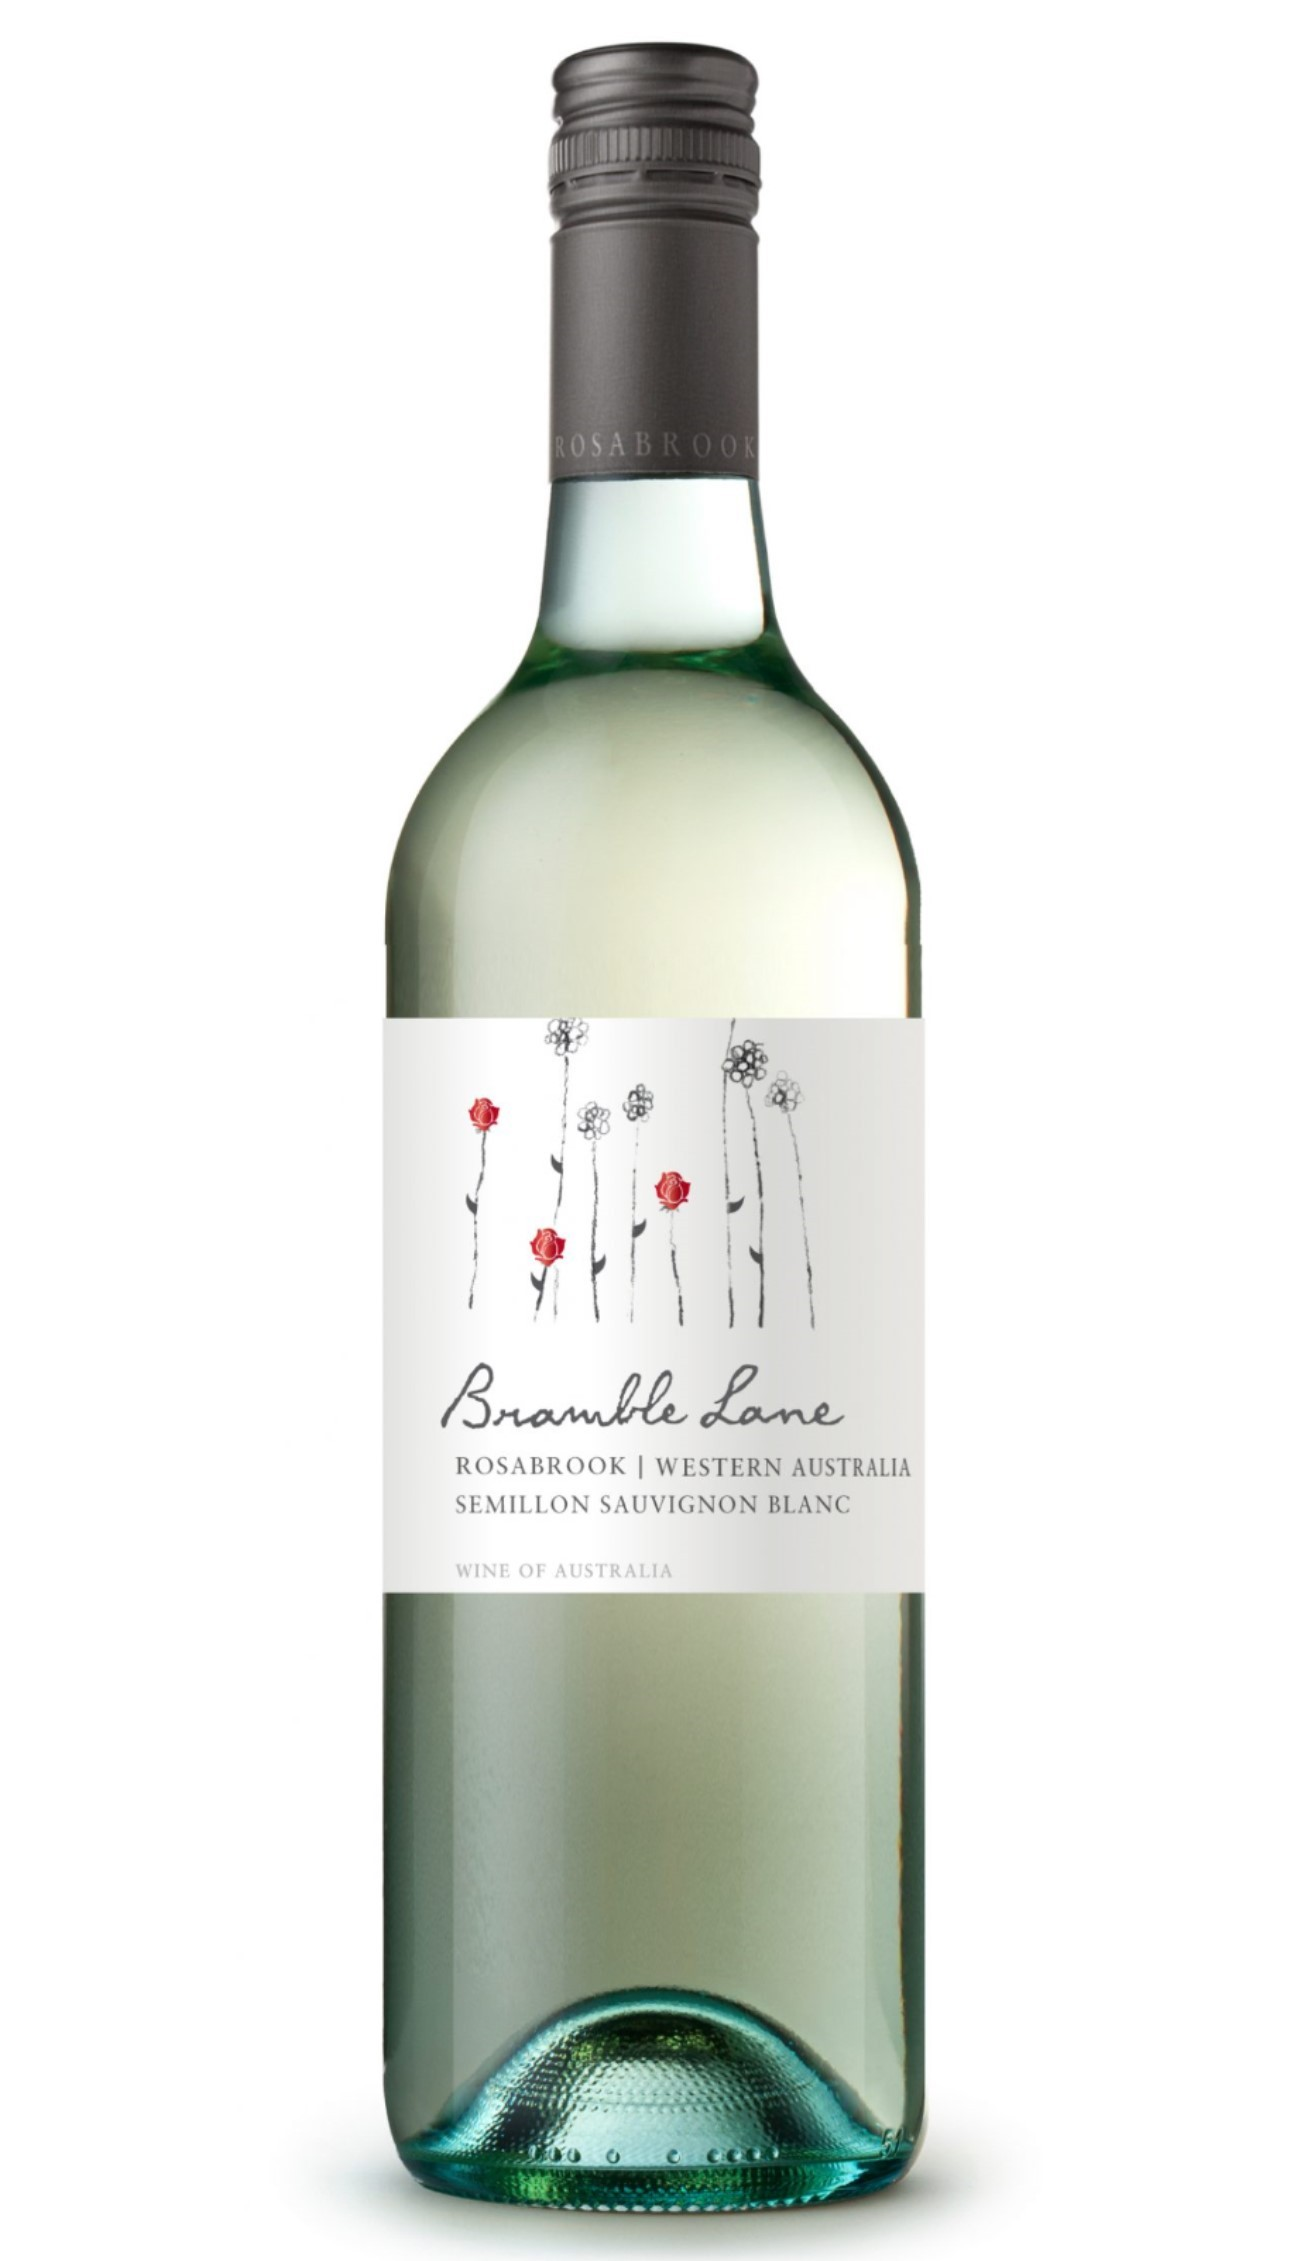 Buy Bramble Lane Semillon Sauvignon Blanc 2016 at herculeswines.co.uk